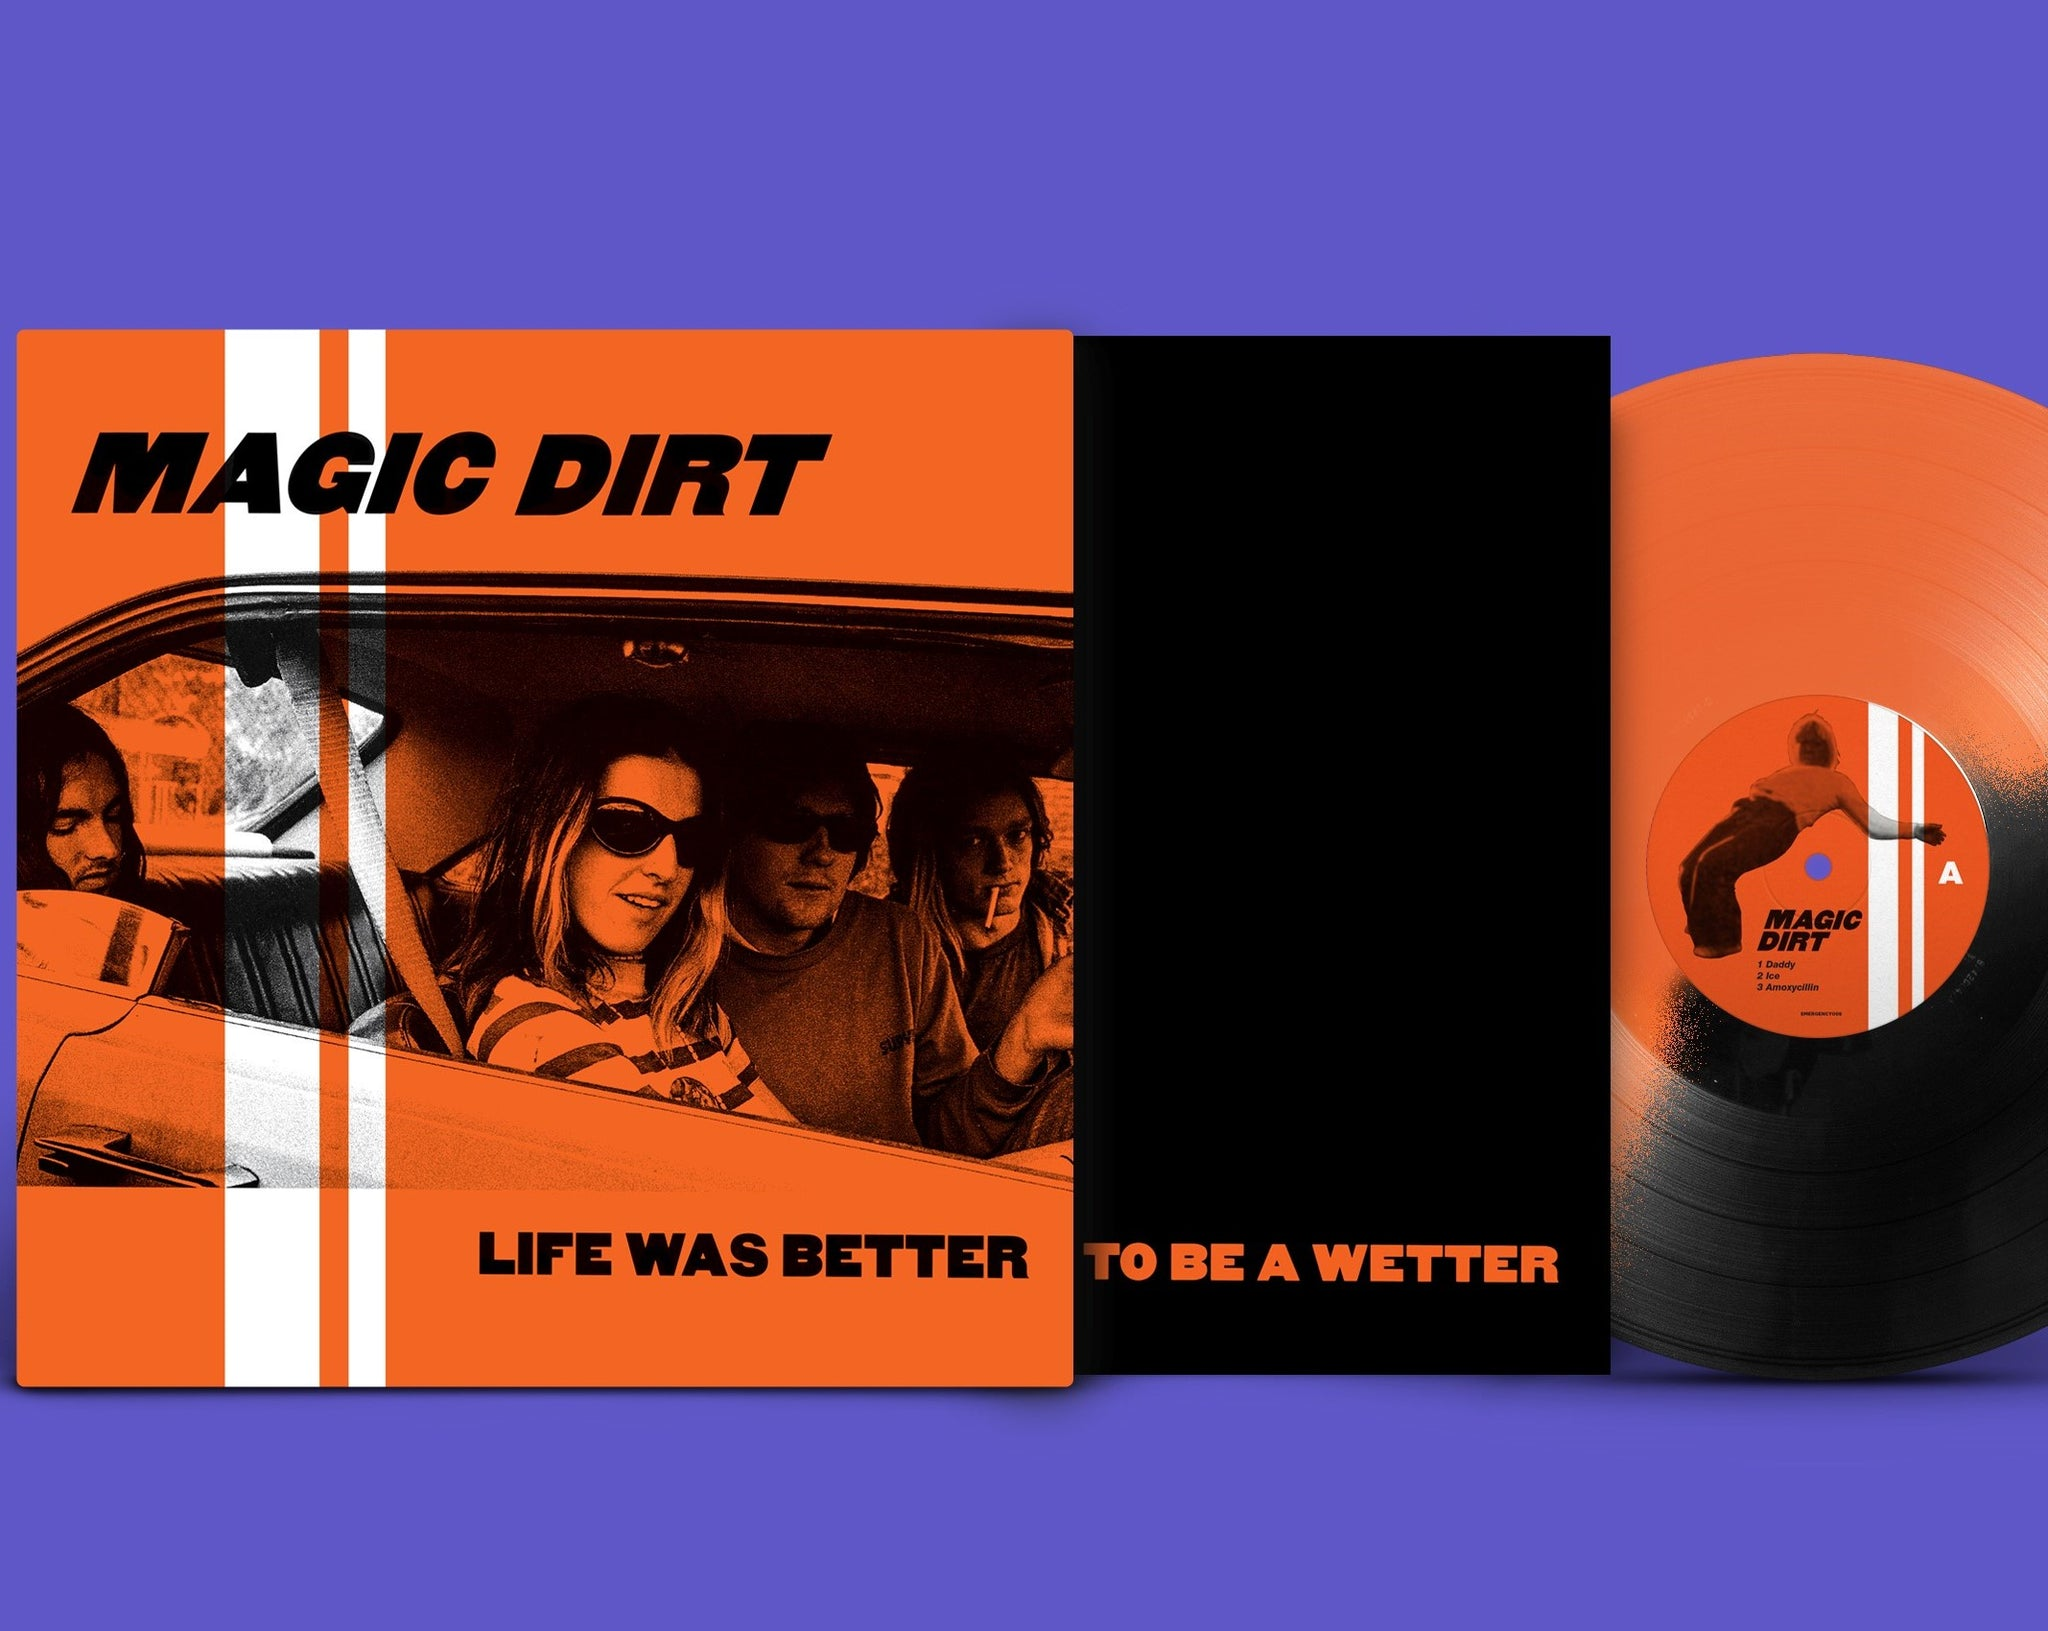 NEW - Magic Dirt, Life Was Better EP NOTE: DUE 17th Jan 2020 (MDC)